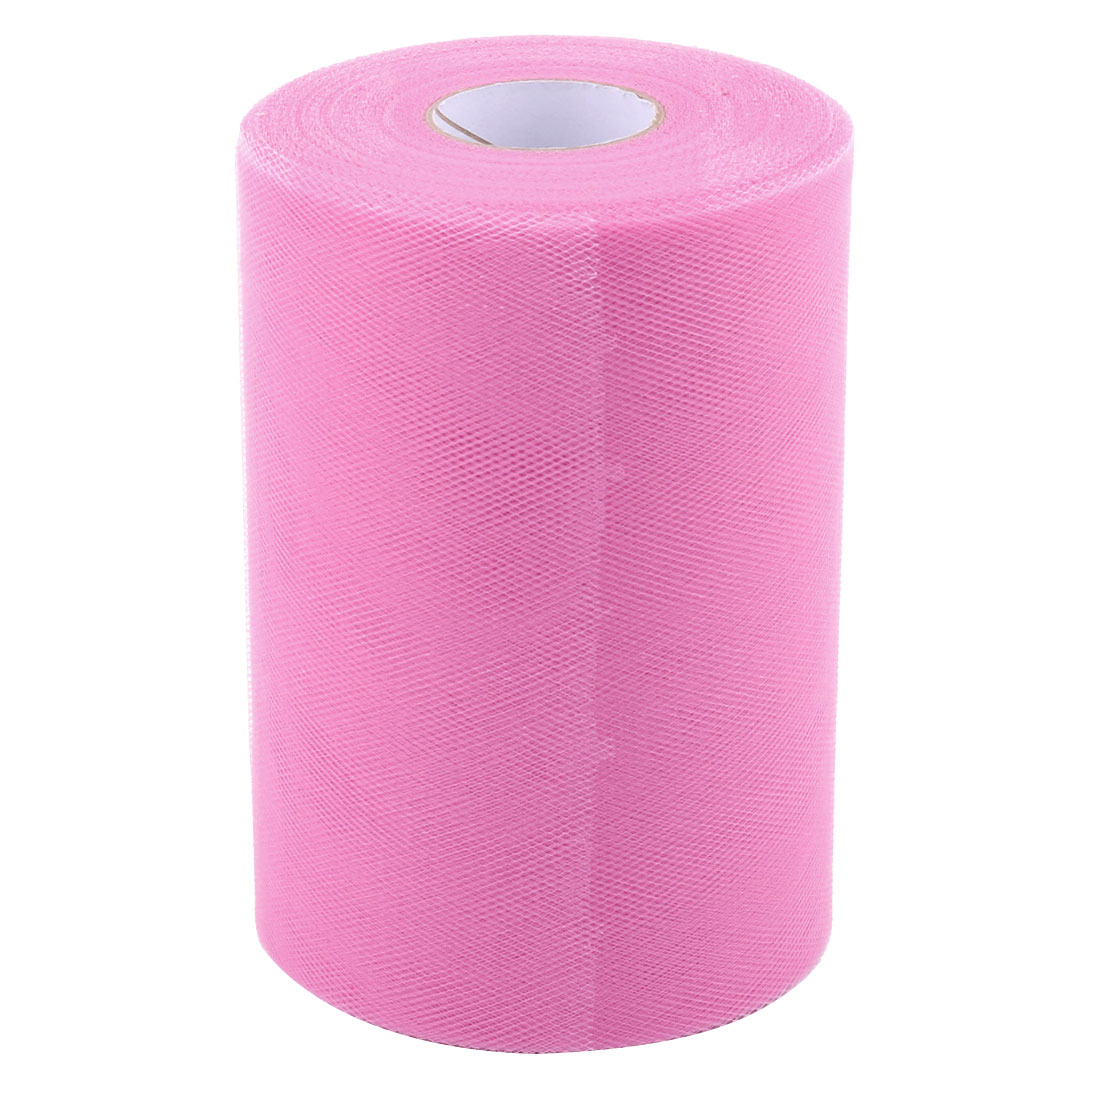 """6"""" x 100 YD Tulle Roll Spool Family Gift Wrap Skirt Tutu Decor Fabric Craft Pink"""